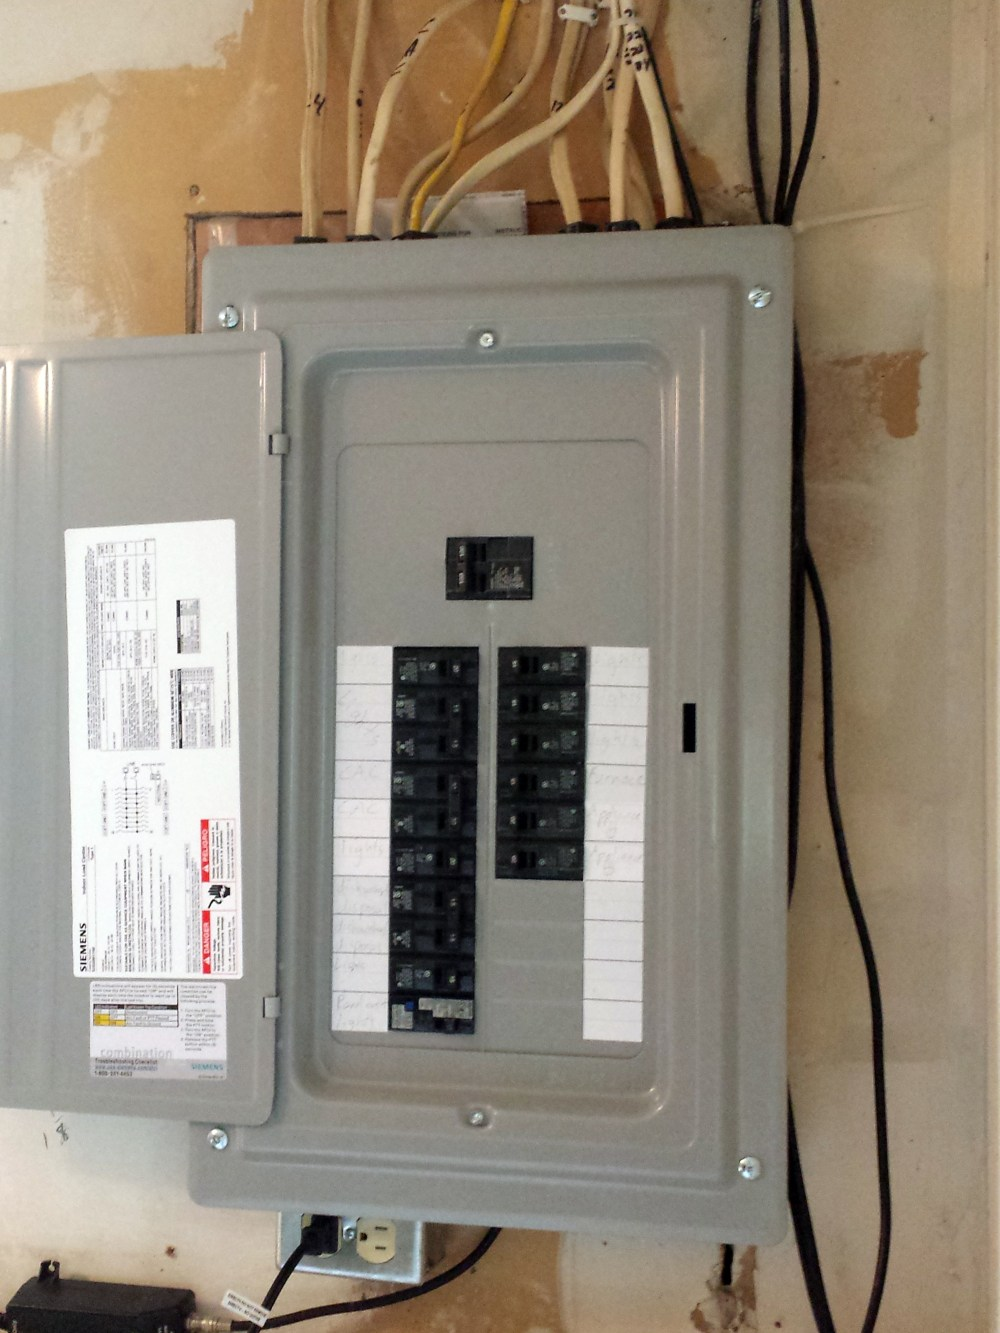 medium resolution of replace fuse box replace fpe breakers total electric 100 amp panel replacing an fpe in coon